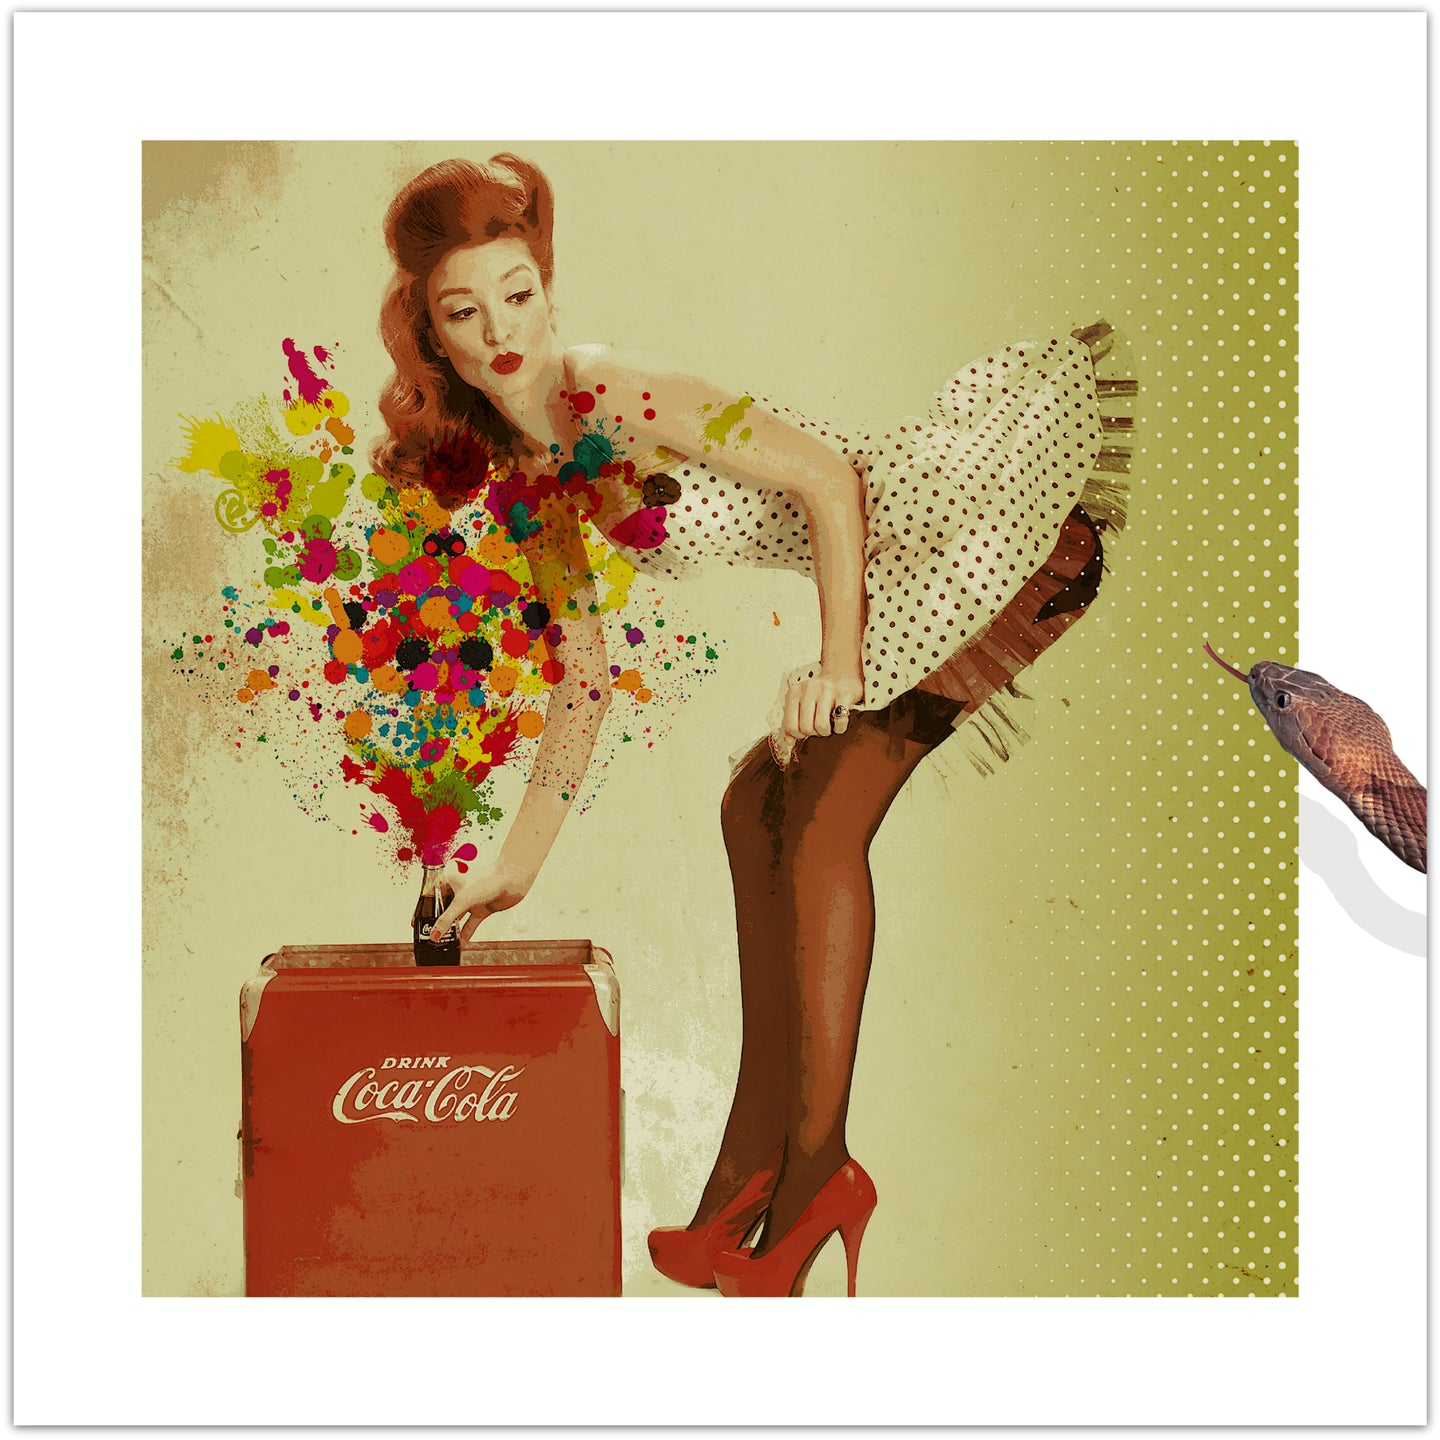 Drink Coca-Cola - pop art kunst af Helt Sort